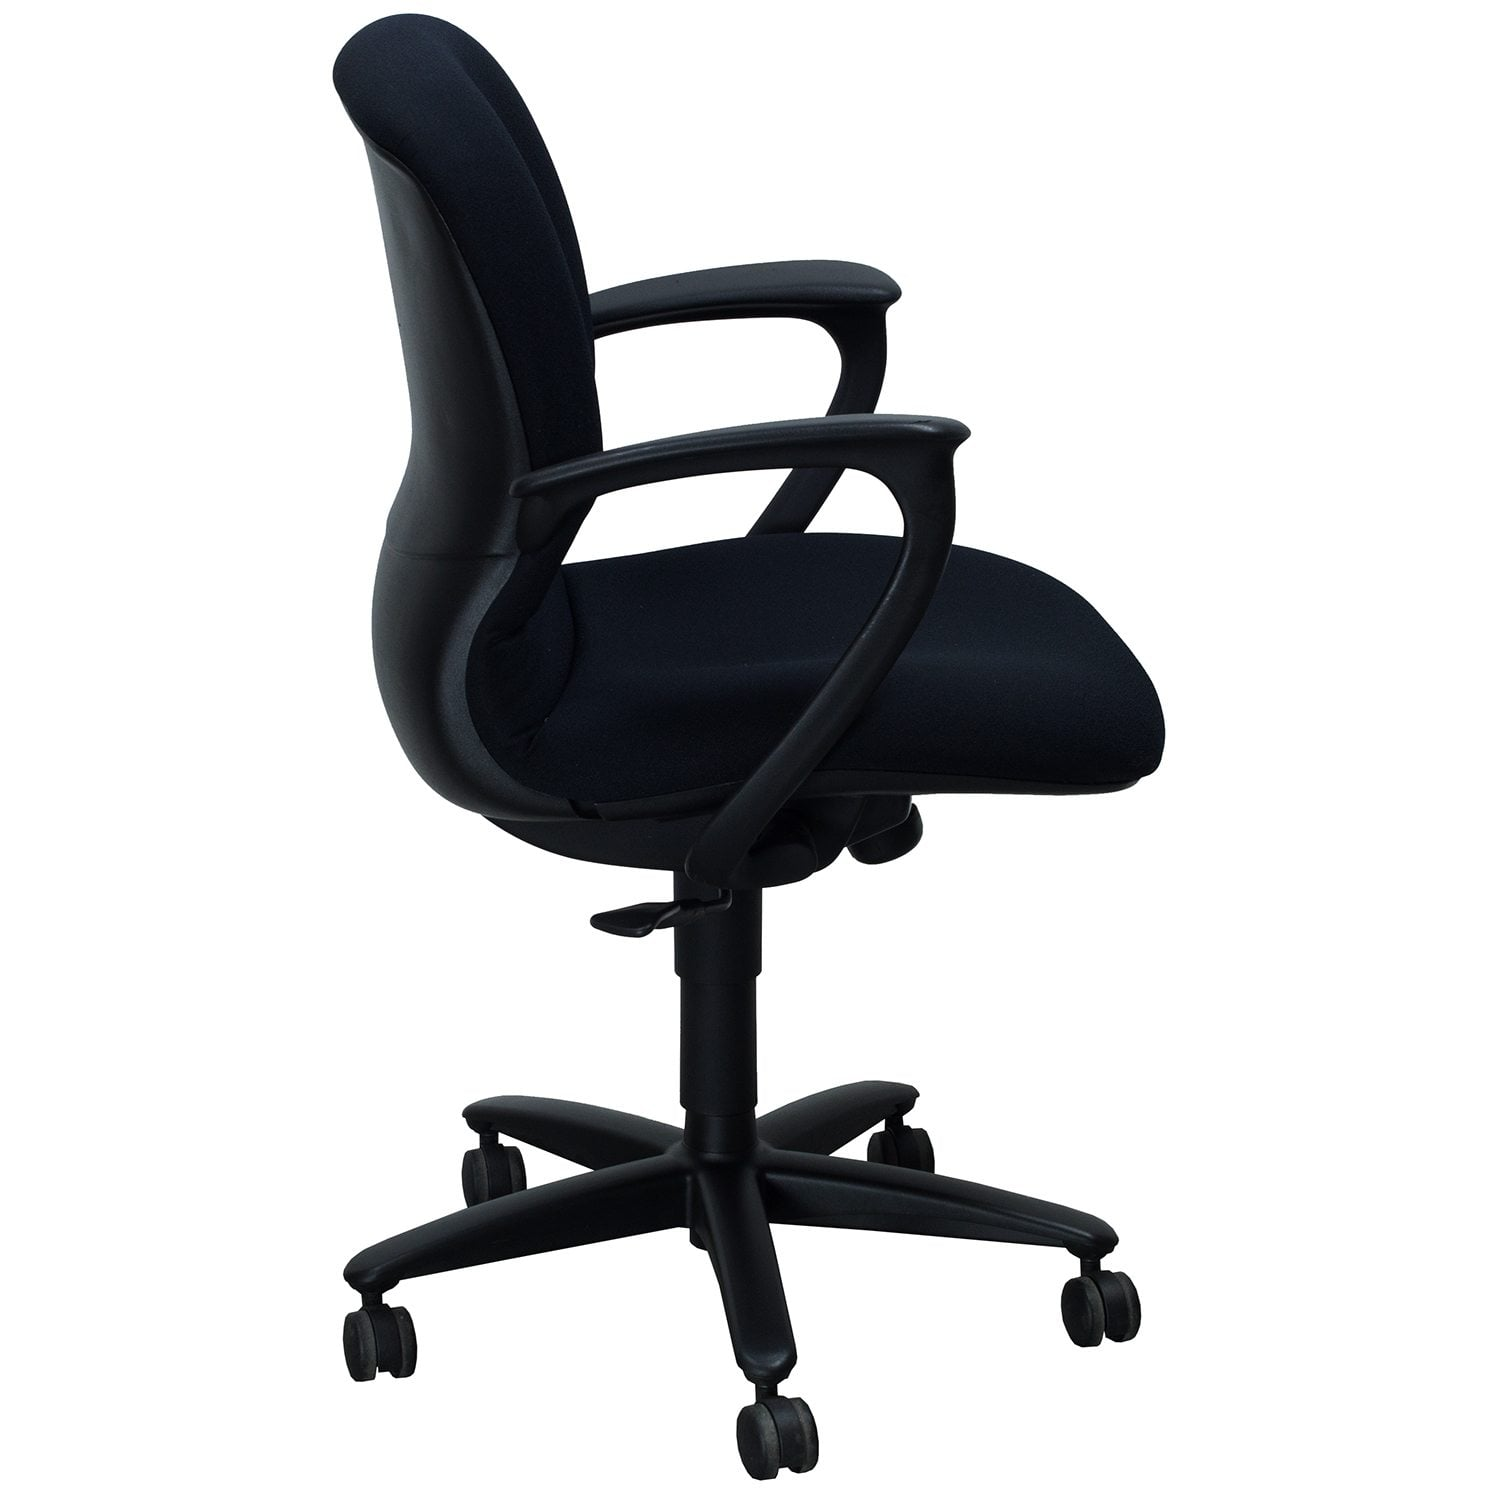 reupholster office chair with arms 2 chairs and table patio set haworth improv desk used conference black